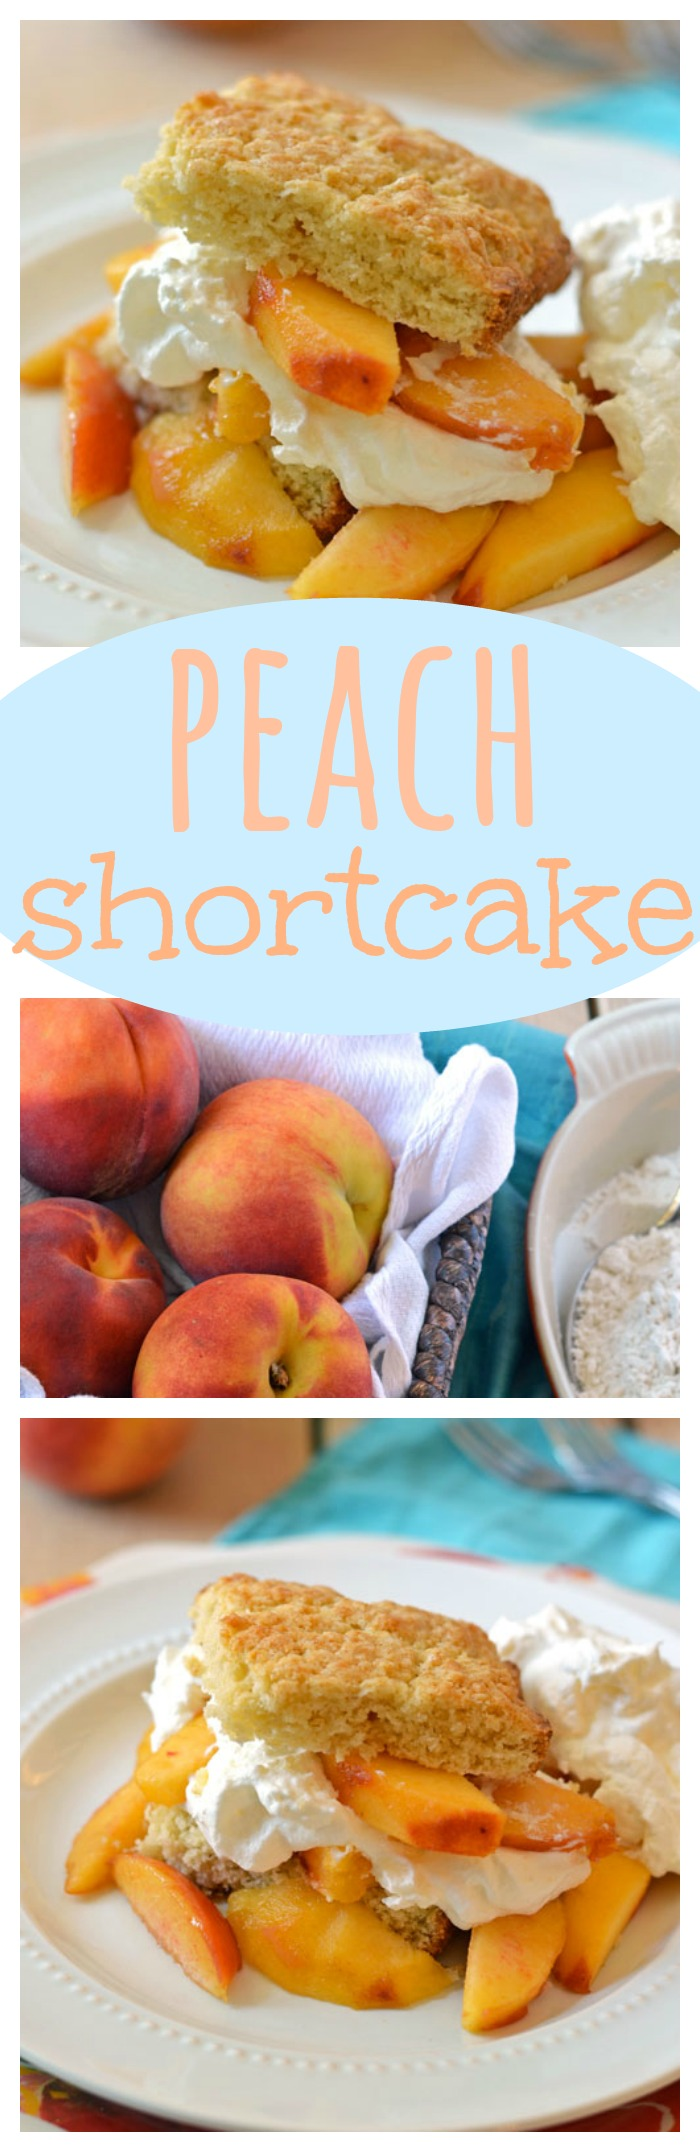 Peach Shortcake Peach Shortcake // Well-plated